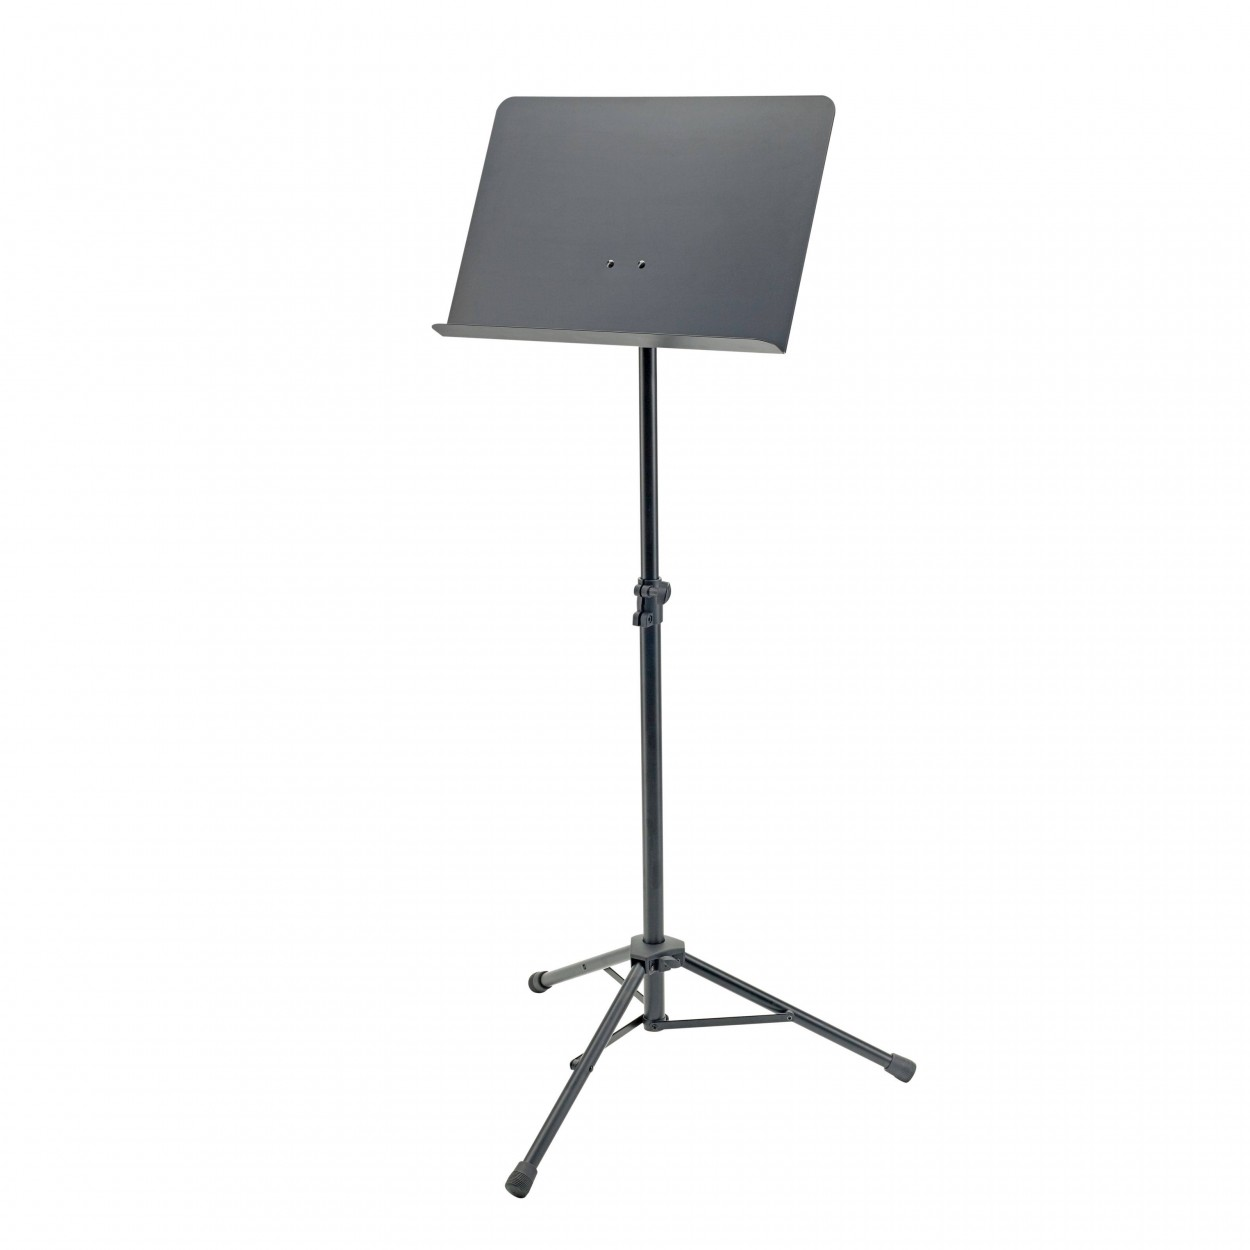 Konig and Meyer 11960 Orchestral Stand